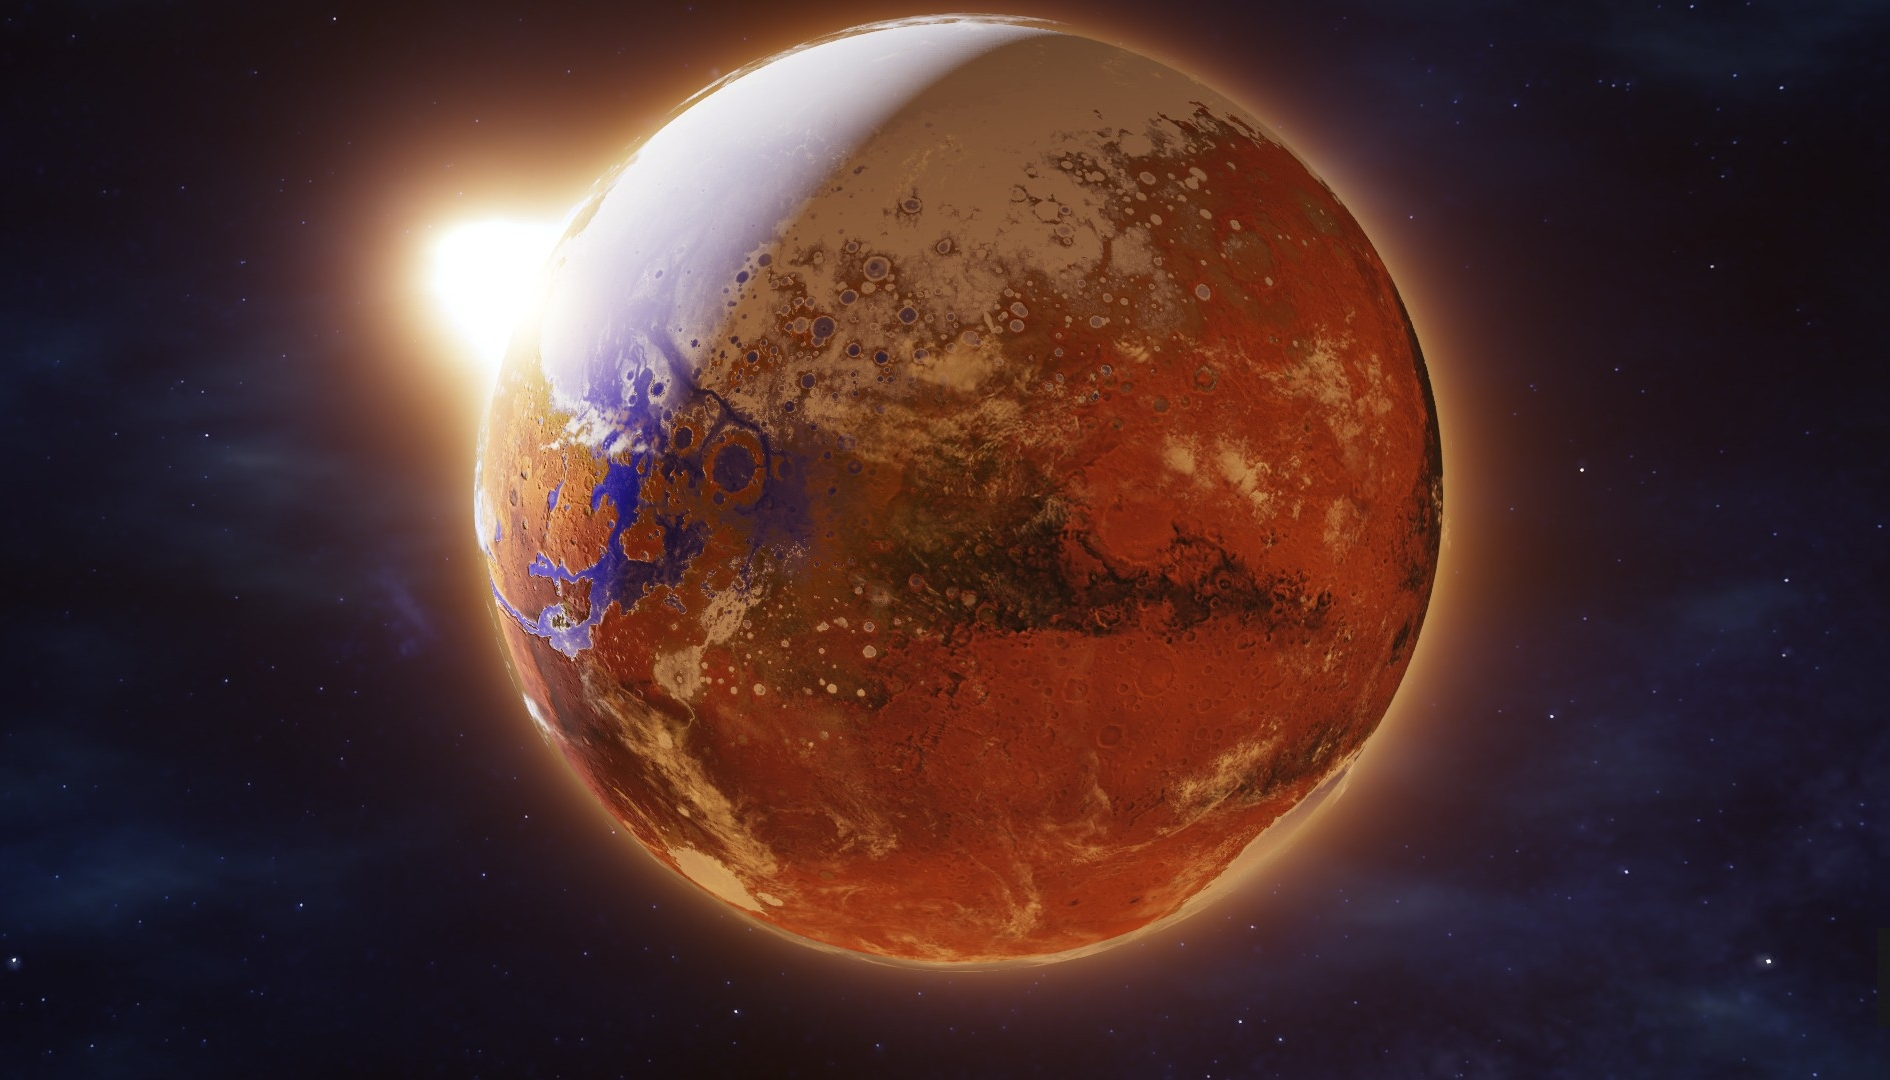 Surviving Mars gratis per un periodo limitato sull'Epic Games Store